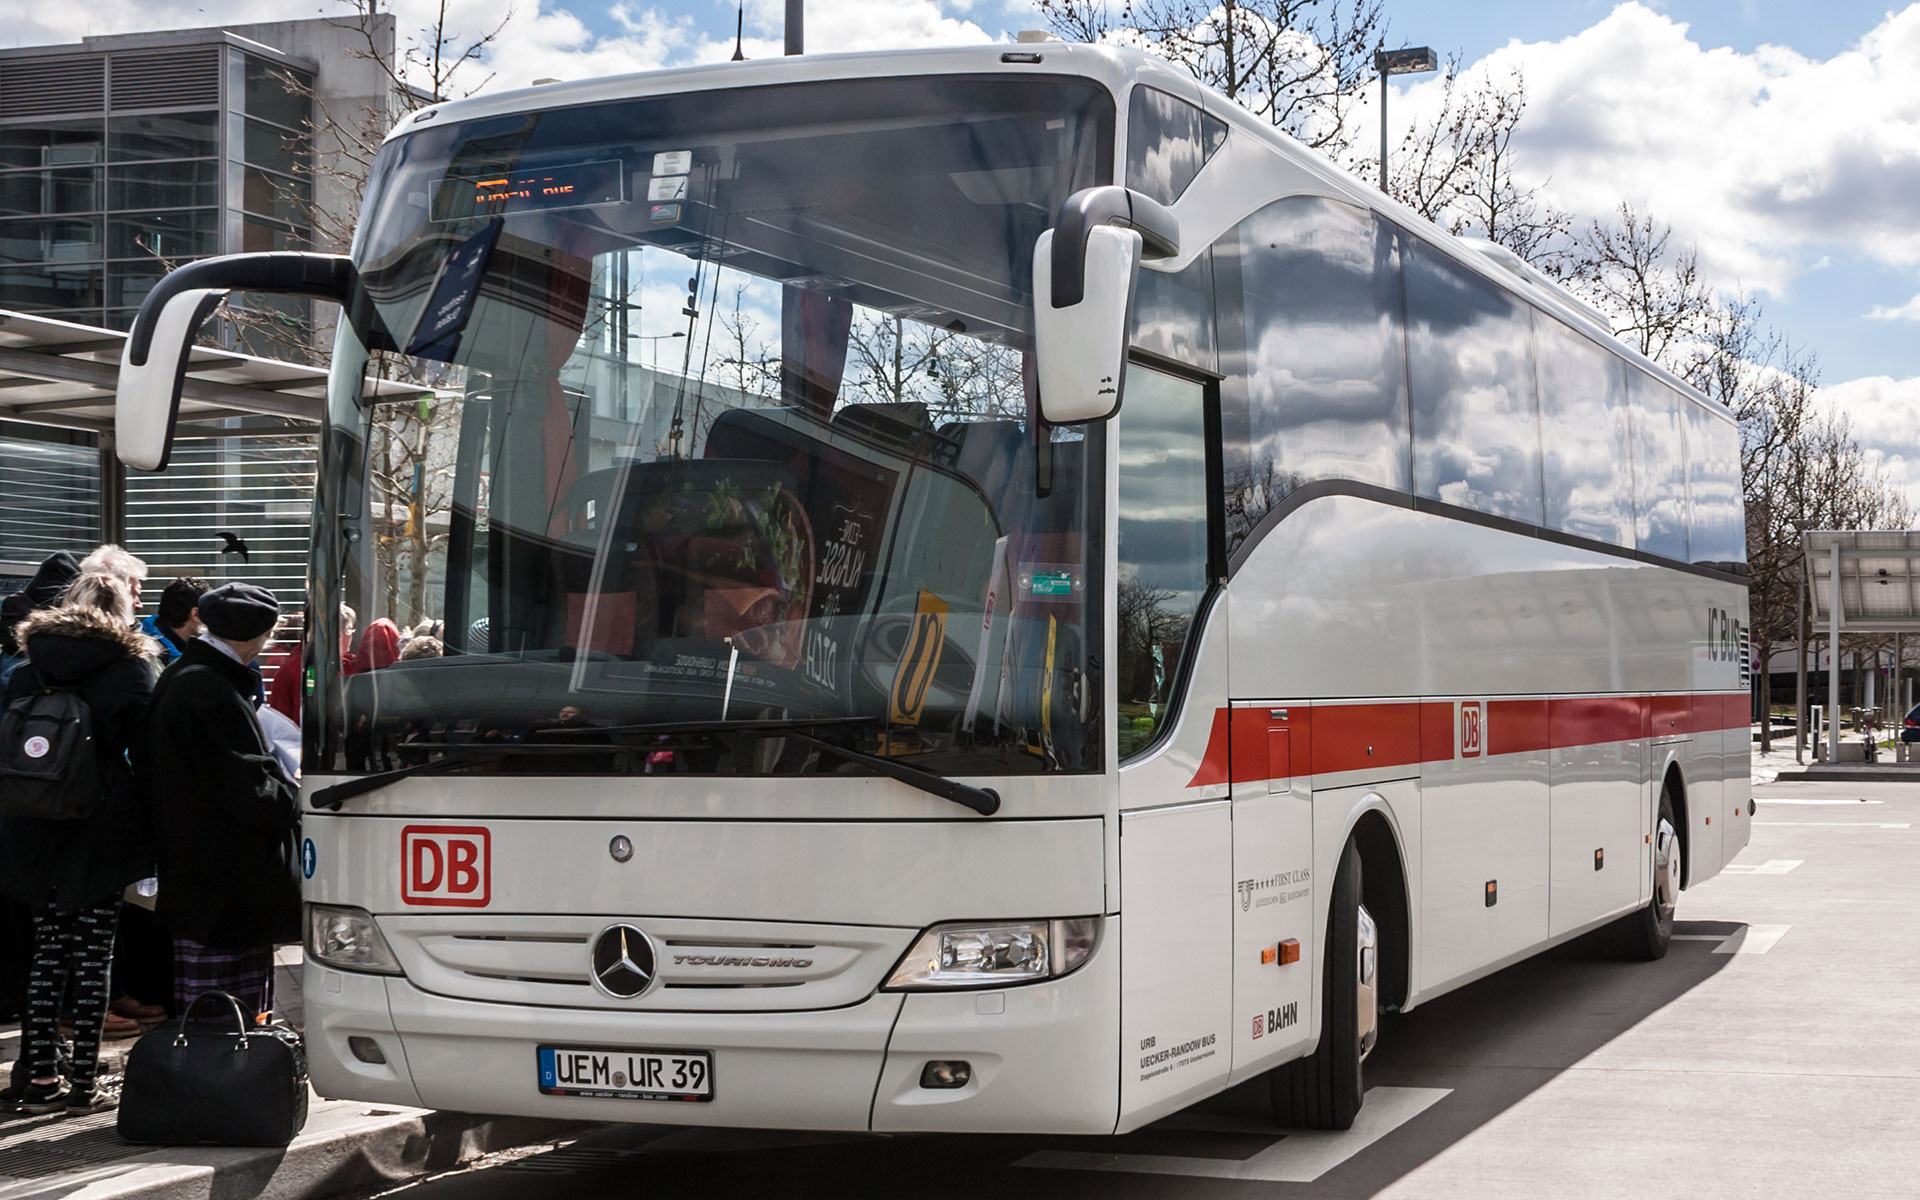 An IC-bus: 'der kleine Bruder der Bahn'. Deutsche Bahn (DB) has a growing network of international bus routes. DB markets the bus network as 'the small brother of the railway' (photo by Matti Blume).